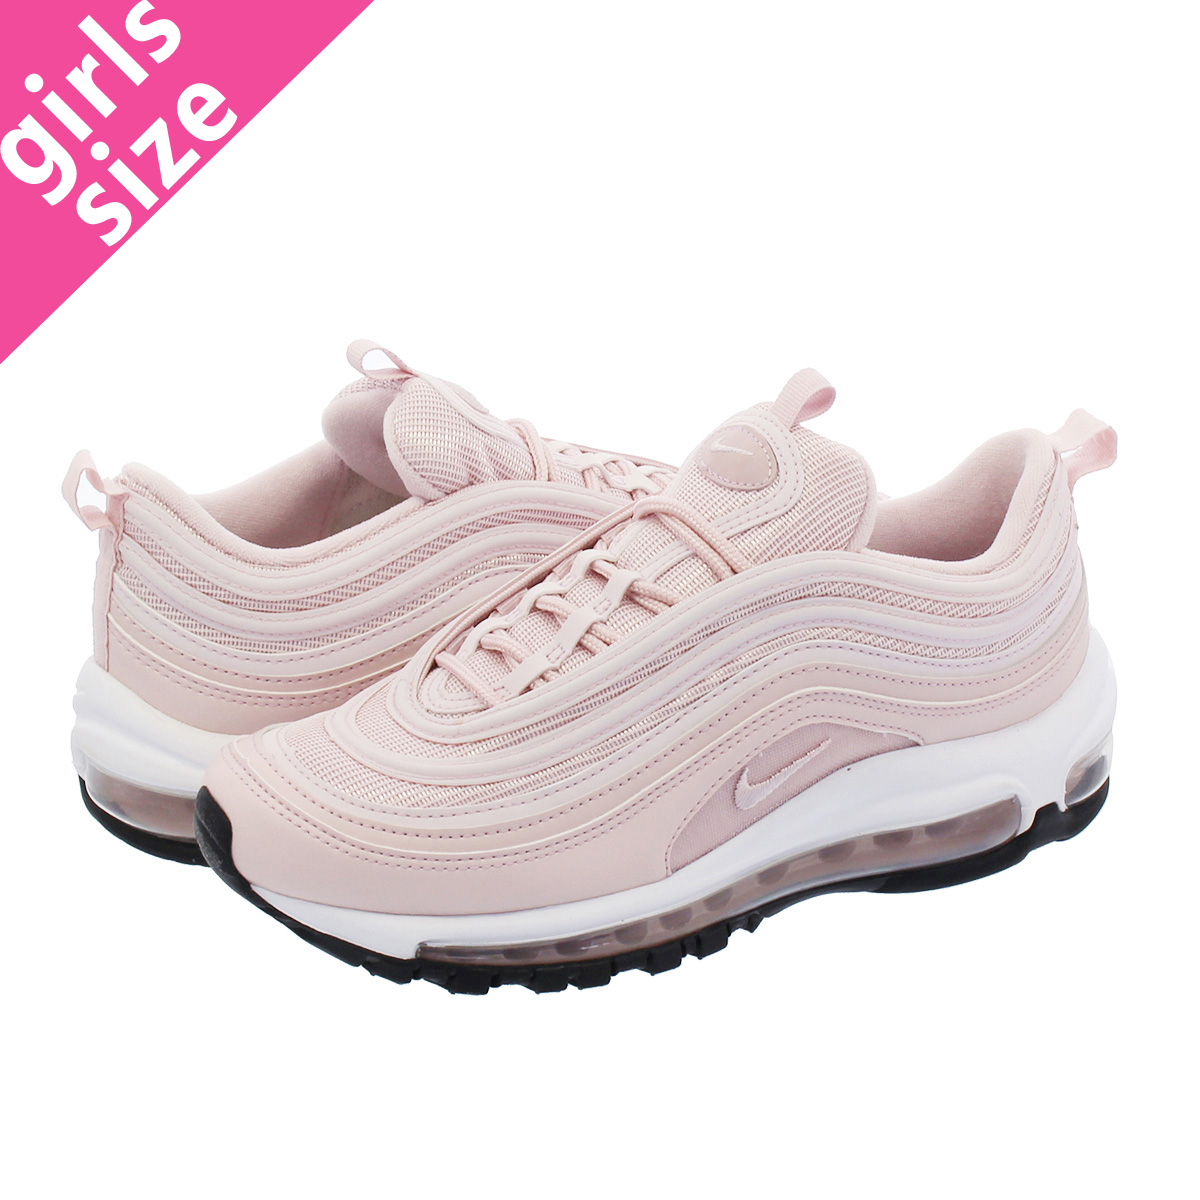 0d728330 NIKE WMNS AIR MAX 97 Nike women Air Max 97 BARELY ROSE/WHITE/BLACK  921733-600-l